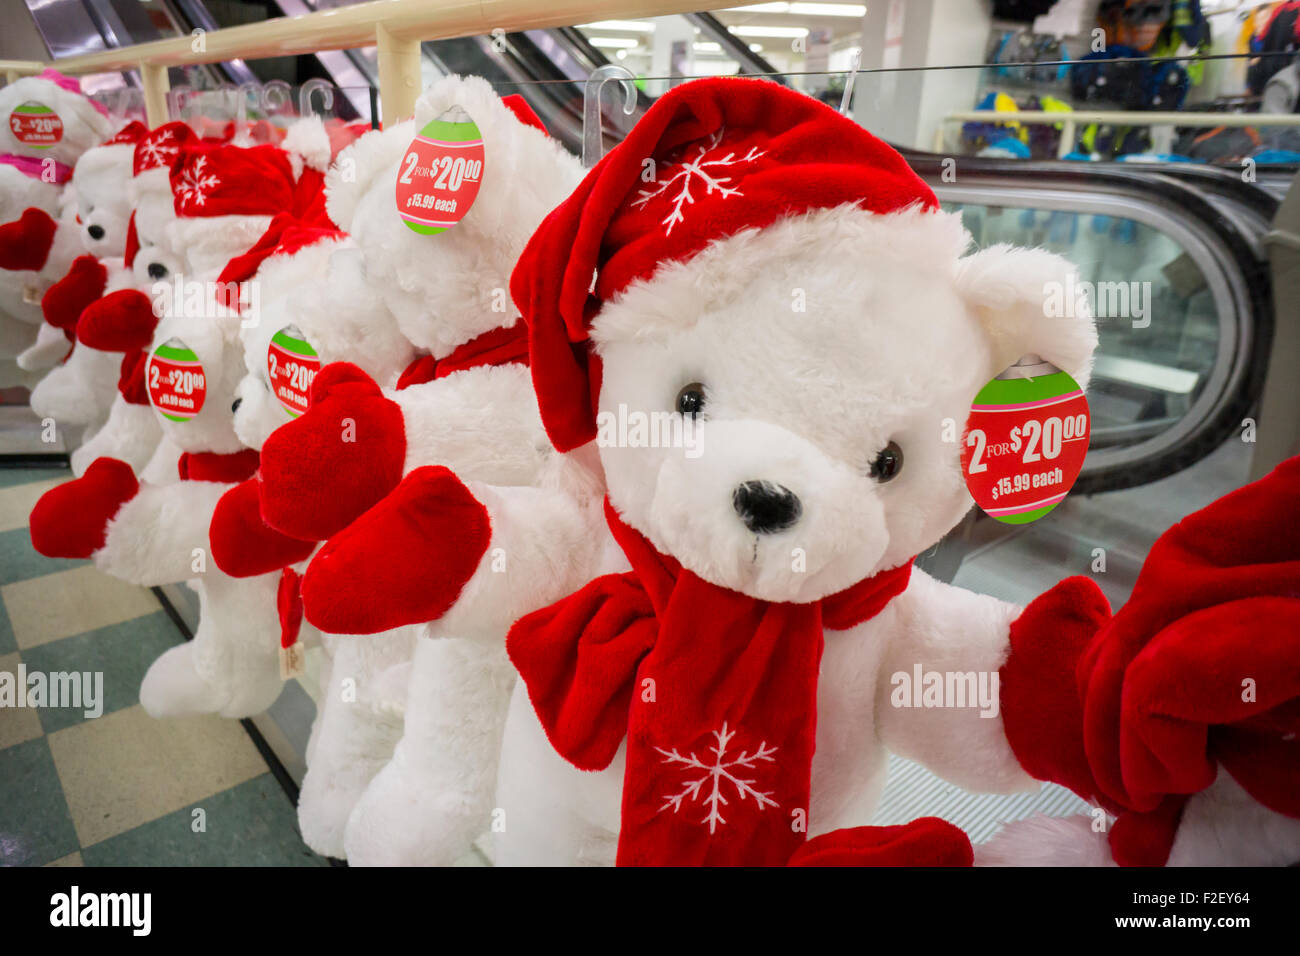 Kmart Christmas Stock Photos & Kmart Christmas Stock Images - Alamy